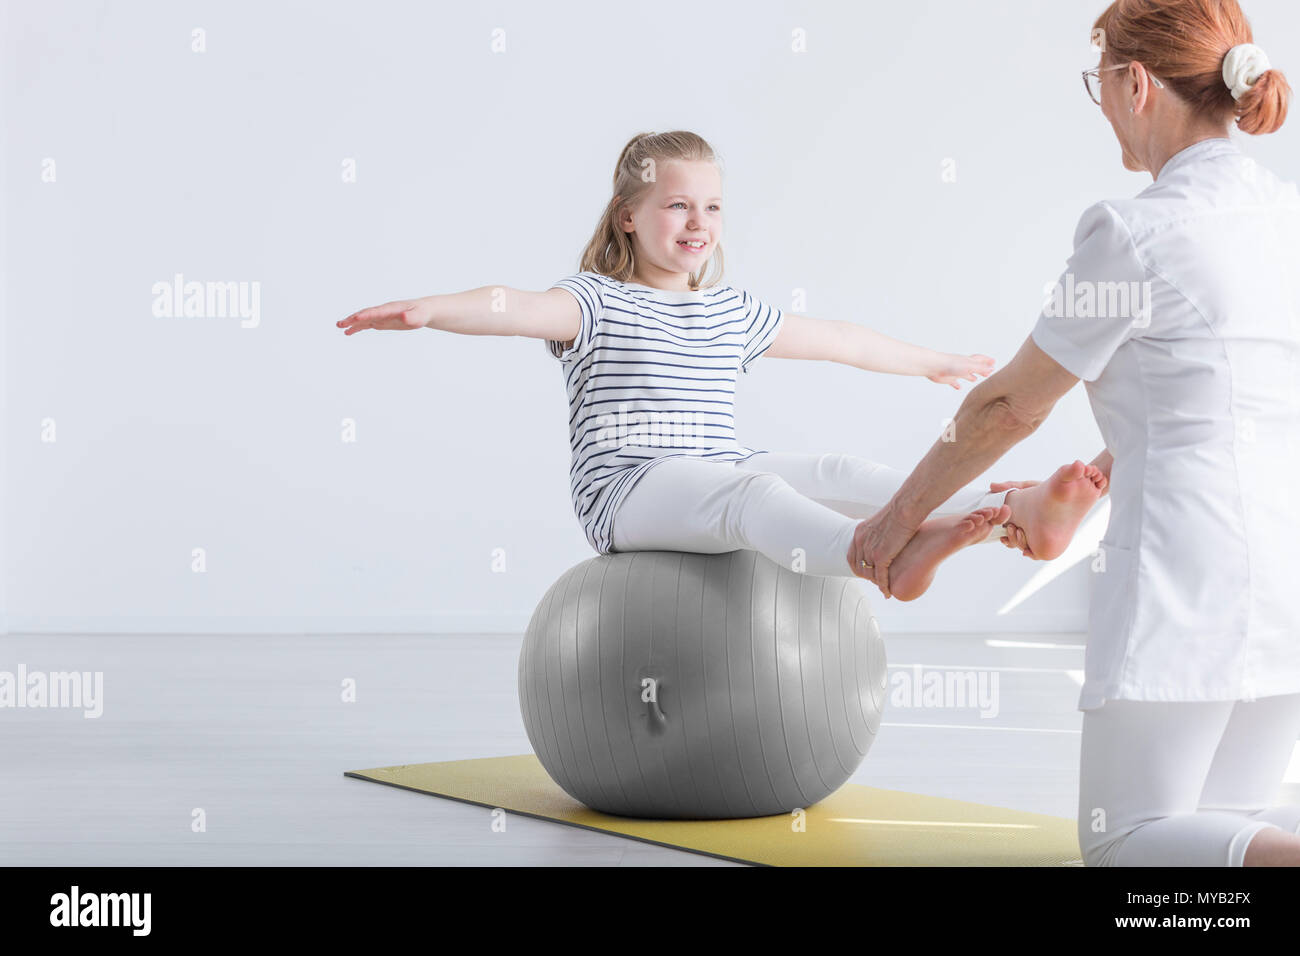 Smiling girl sitting on big gym ball working with physiotherapist - Stock Image